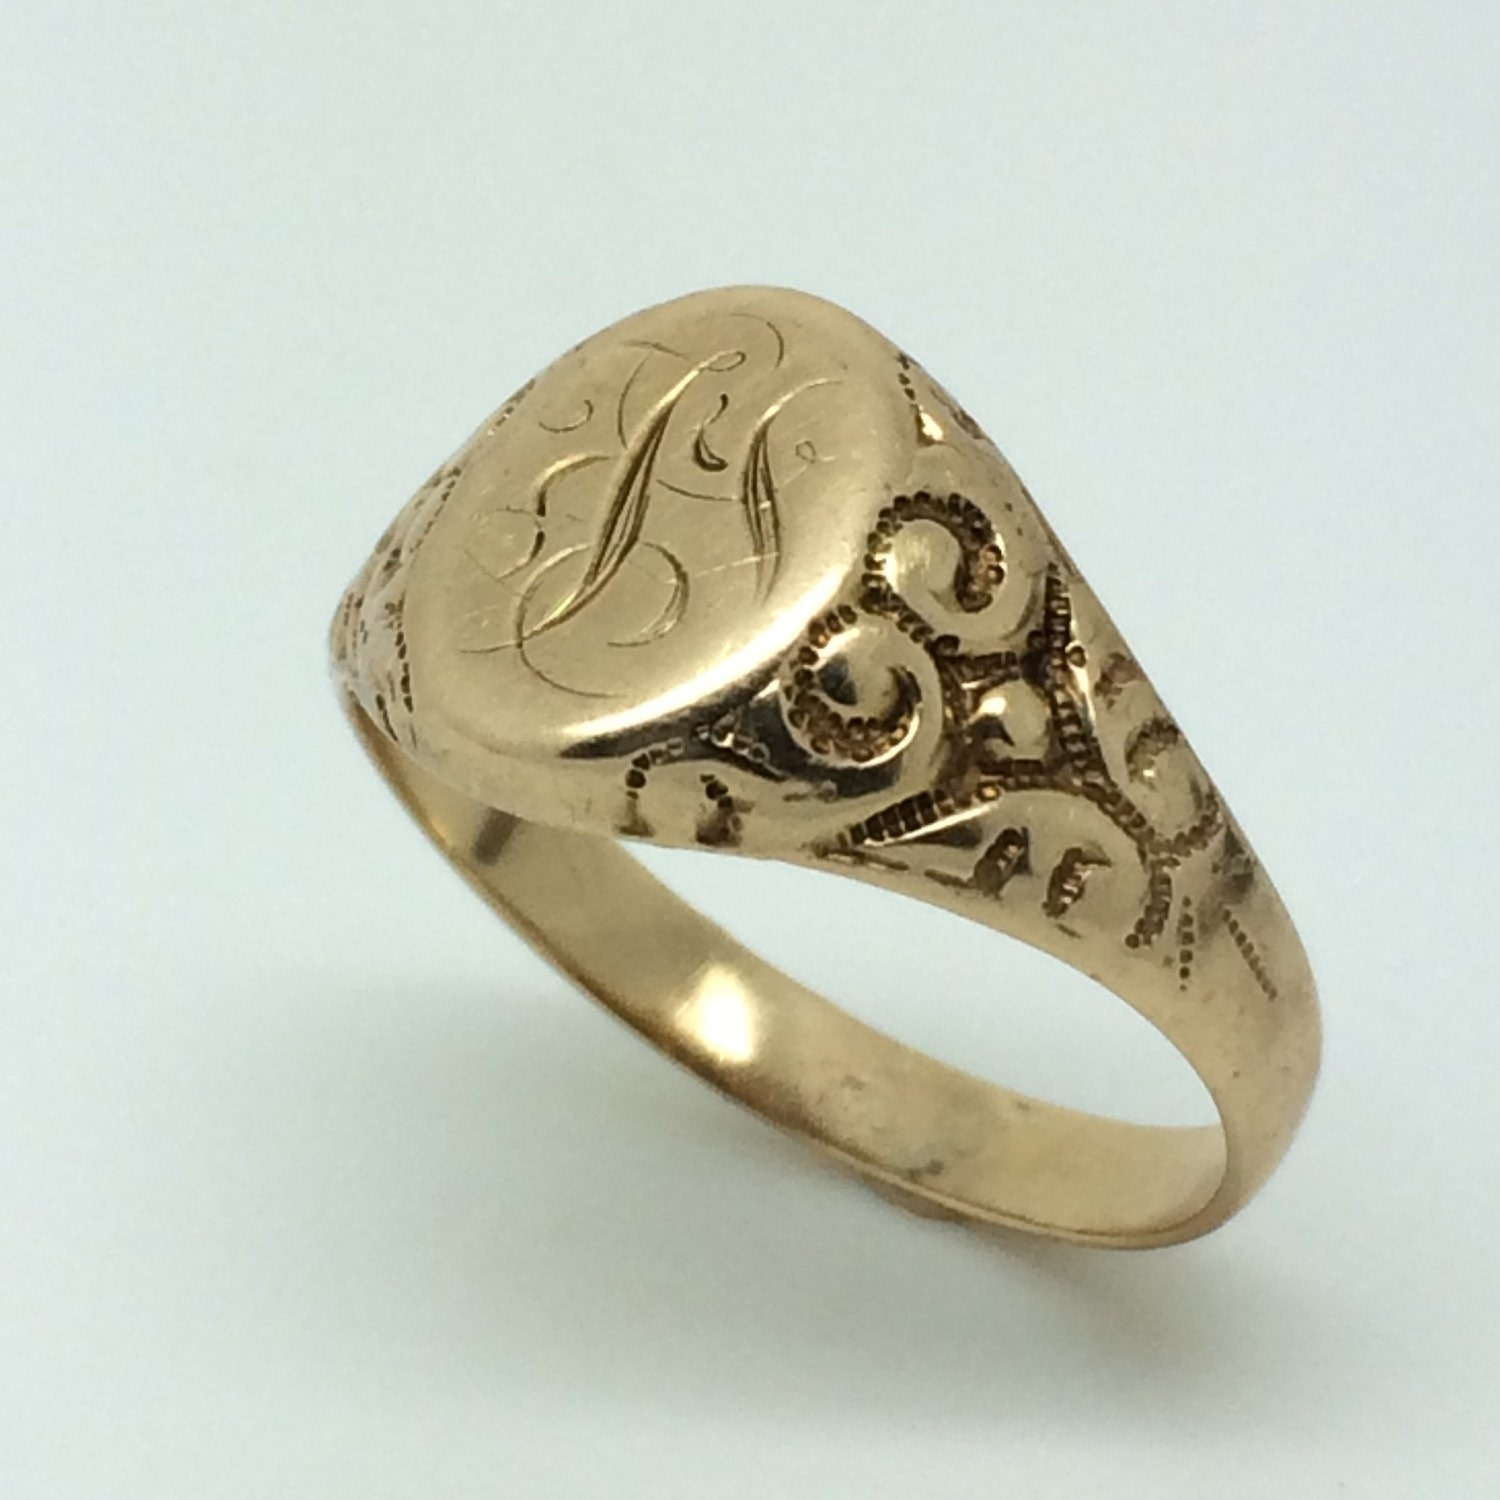 lovely signet ring in 10k yellow gold by estatejewelrymama